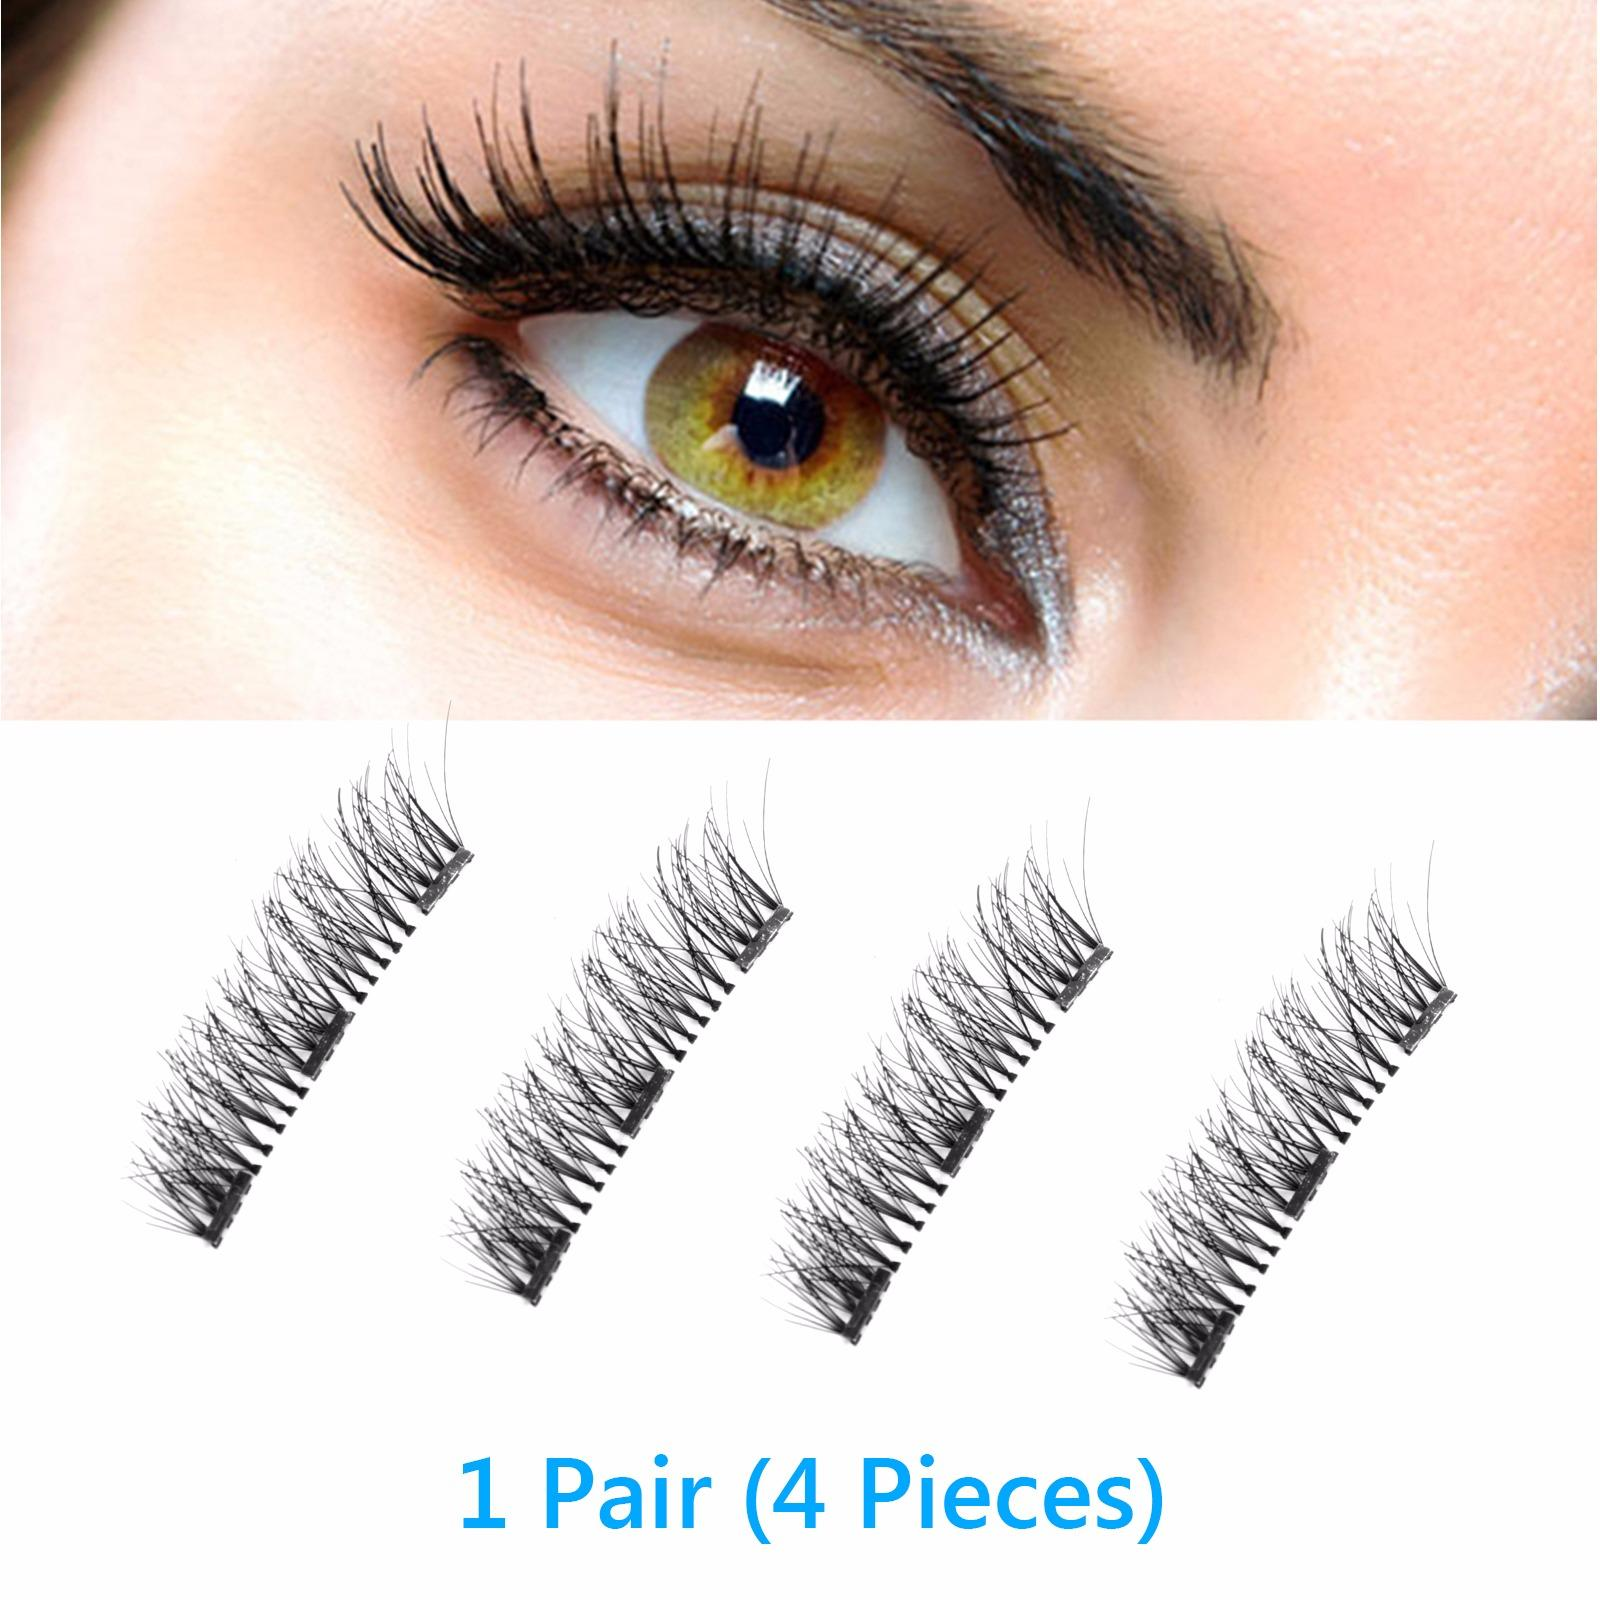 Magnetic Eyelashes False, 4pcs/pair Magnetic 3d Eyelashes Double Handmade Natural False Long Eye Lash Reusable(thred Magnet Eyelashes False) By Wripples.